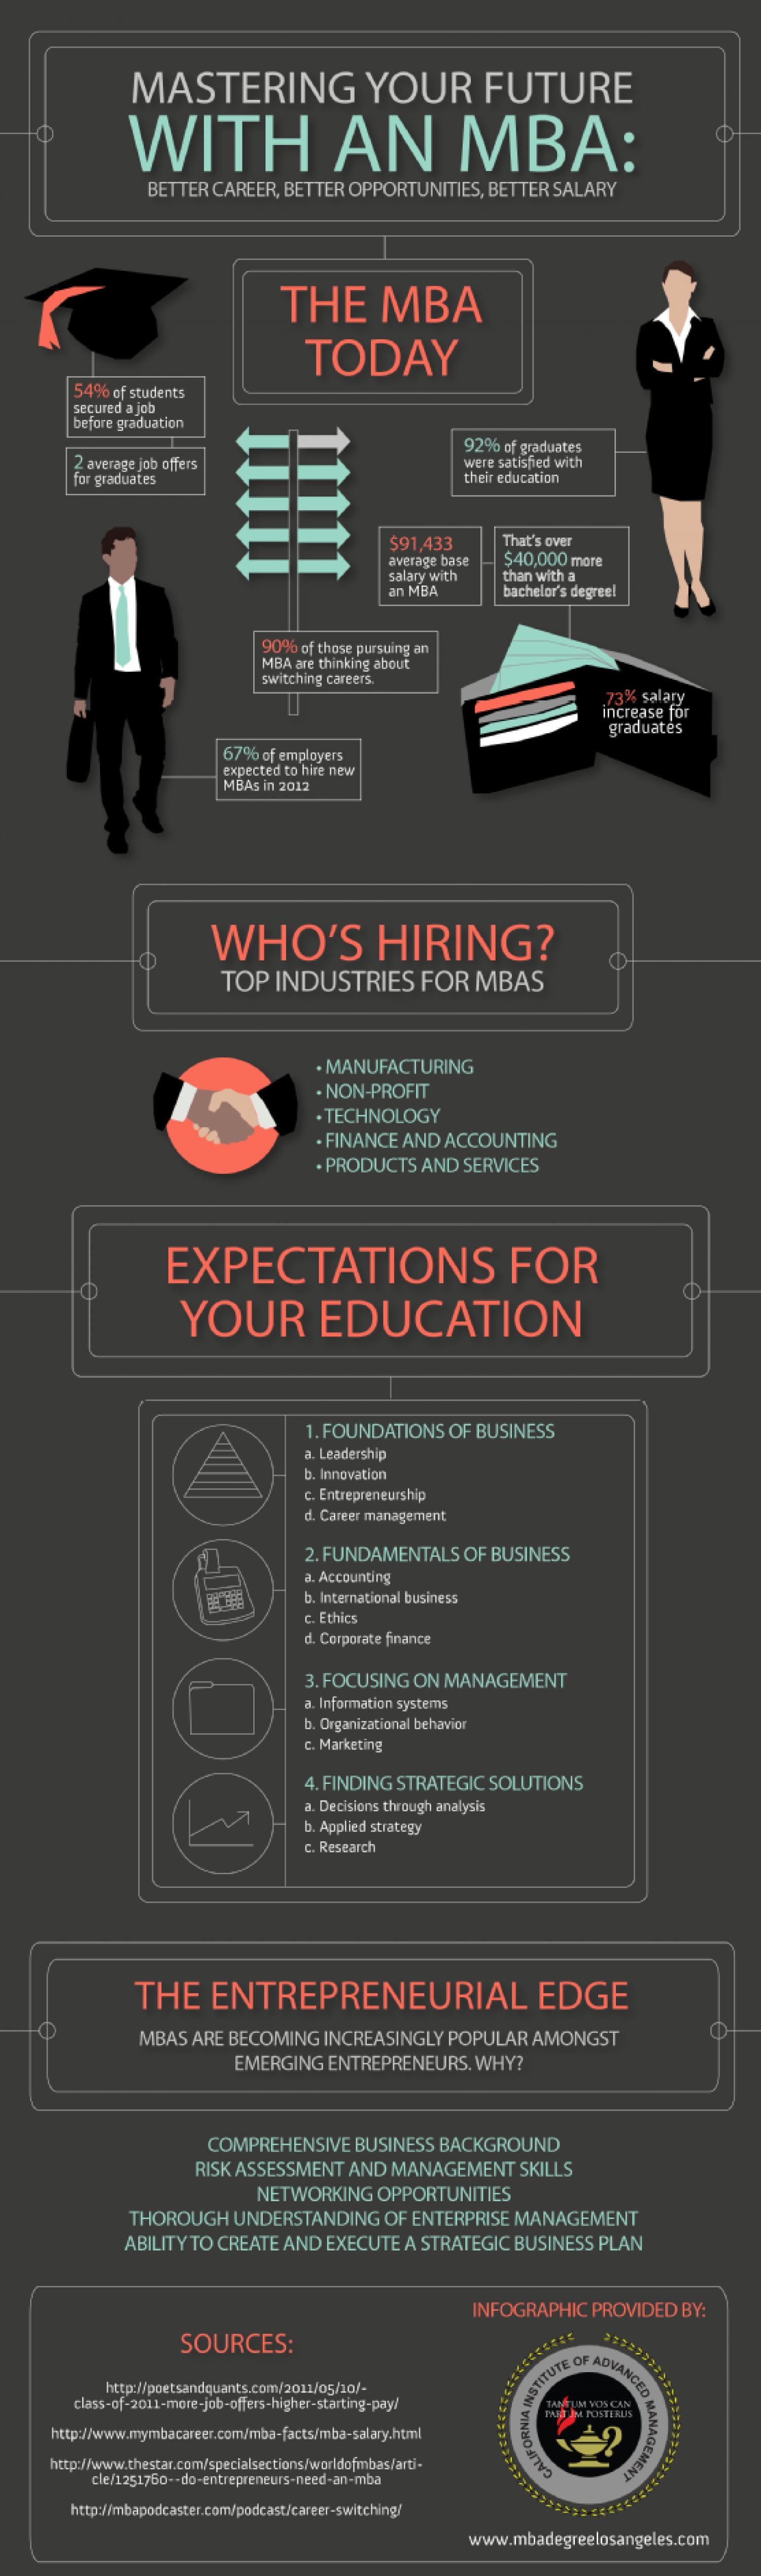 Mastering Your Future with an MBA: Better Career, Better Opportunities, Better Salary Infographic